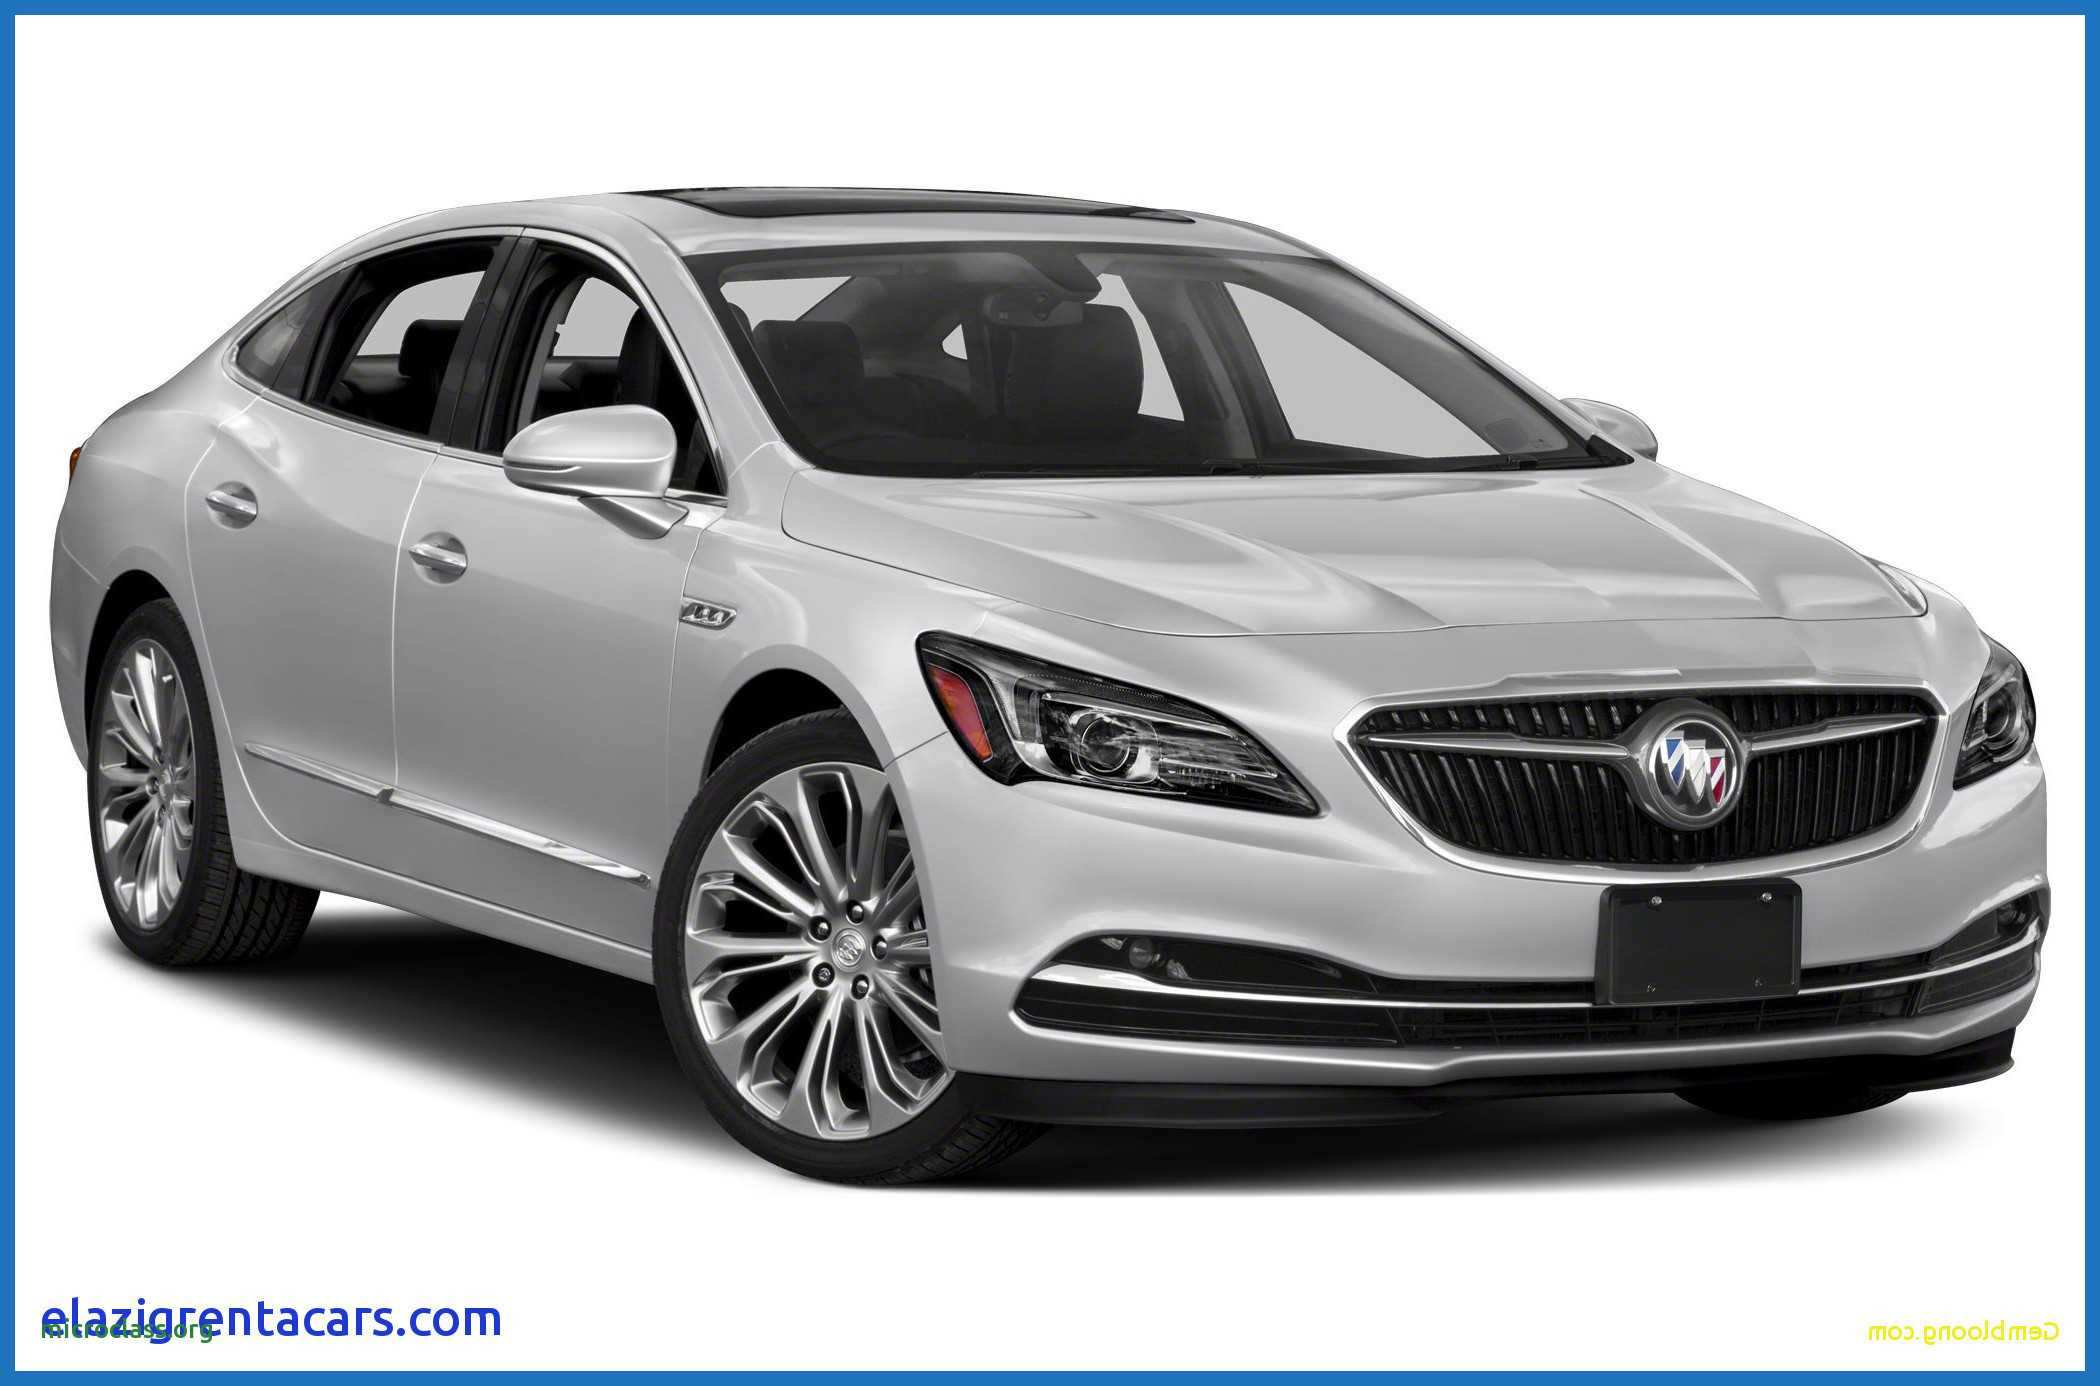 25 All New 2020 Buick Lesabre Research New